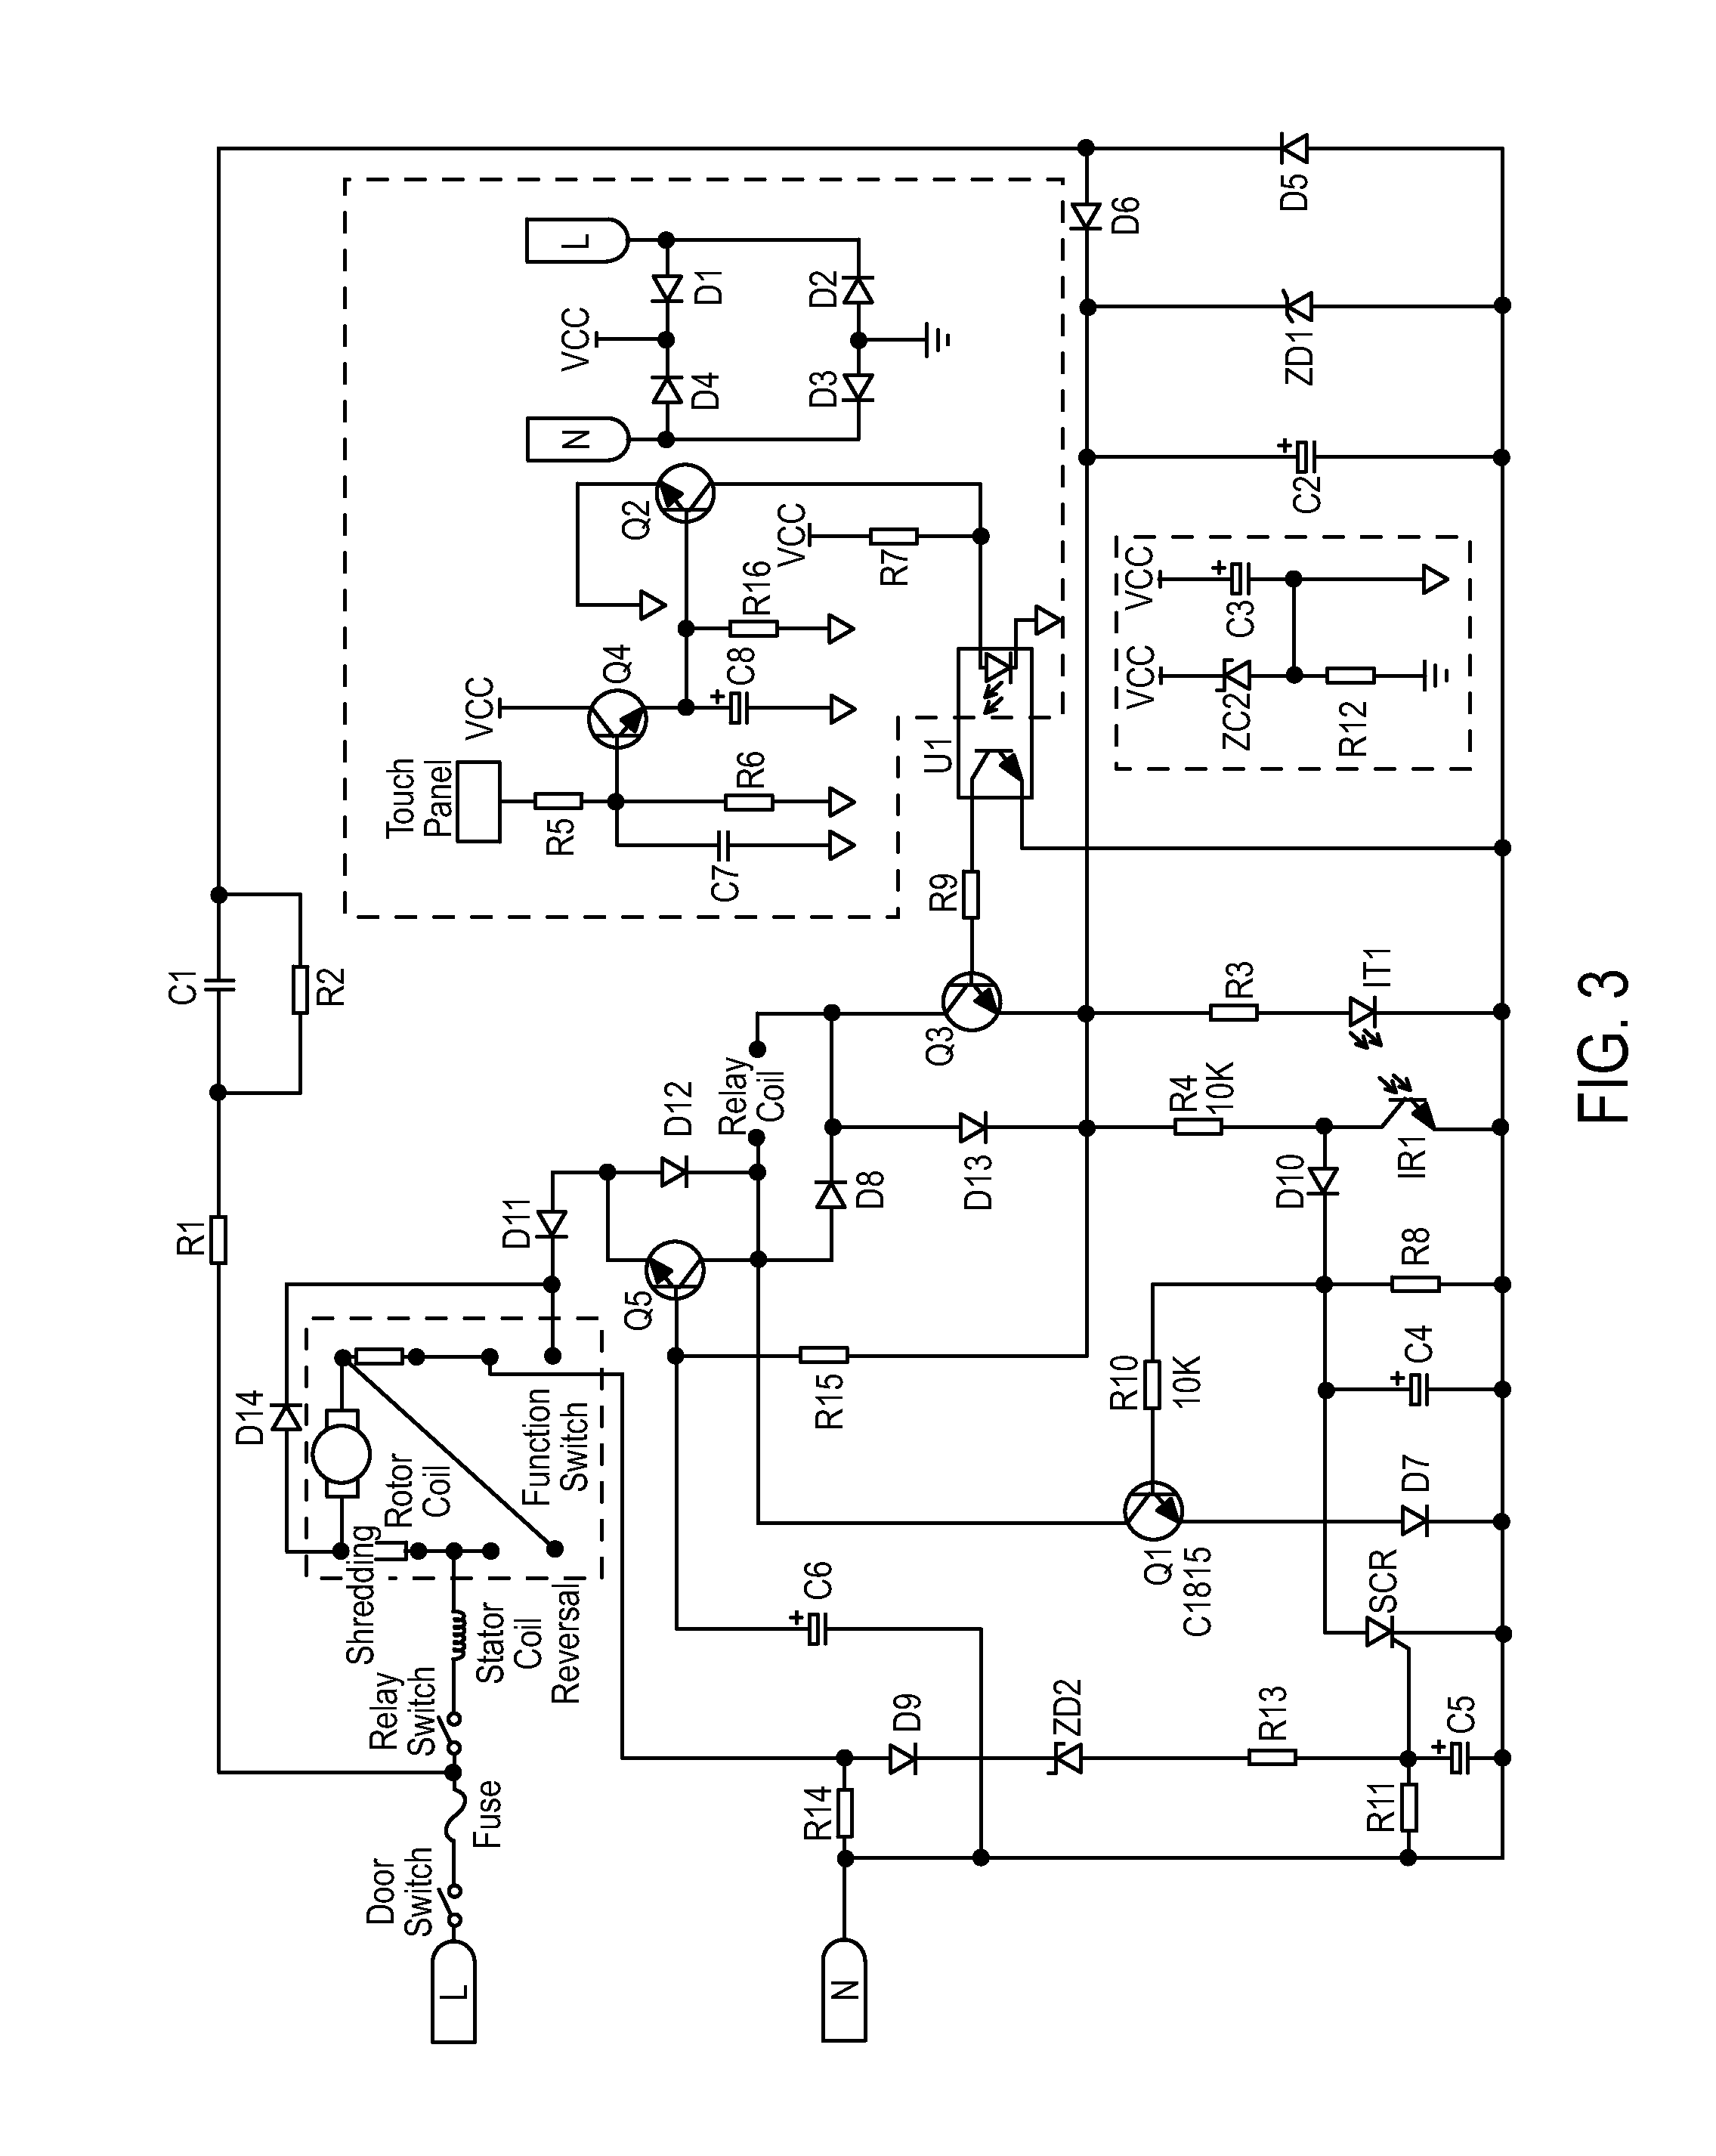 Stanley Magic Access Wiring Diagram : 35 Wiring Diagram